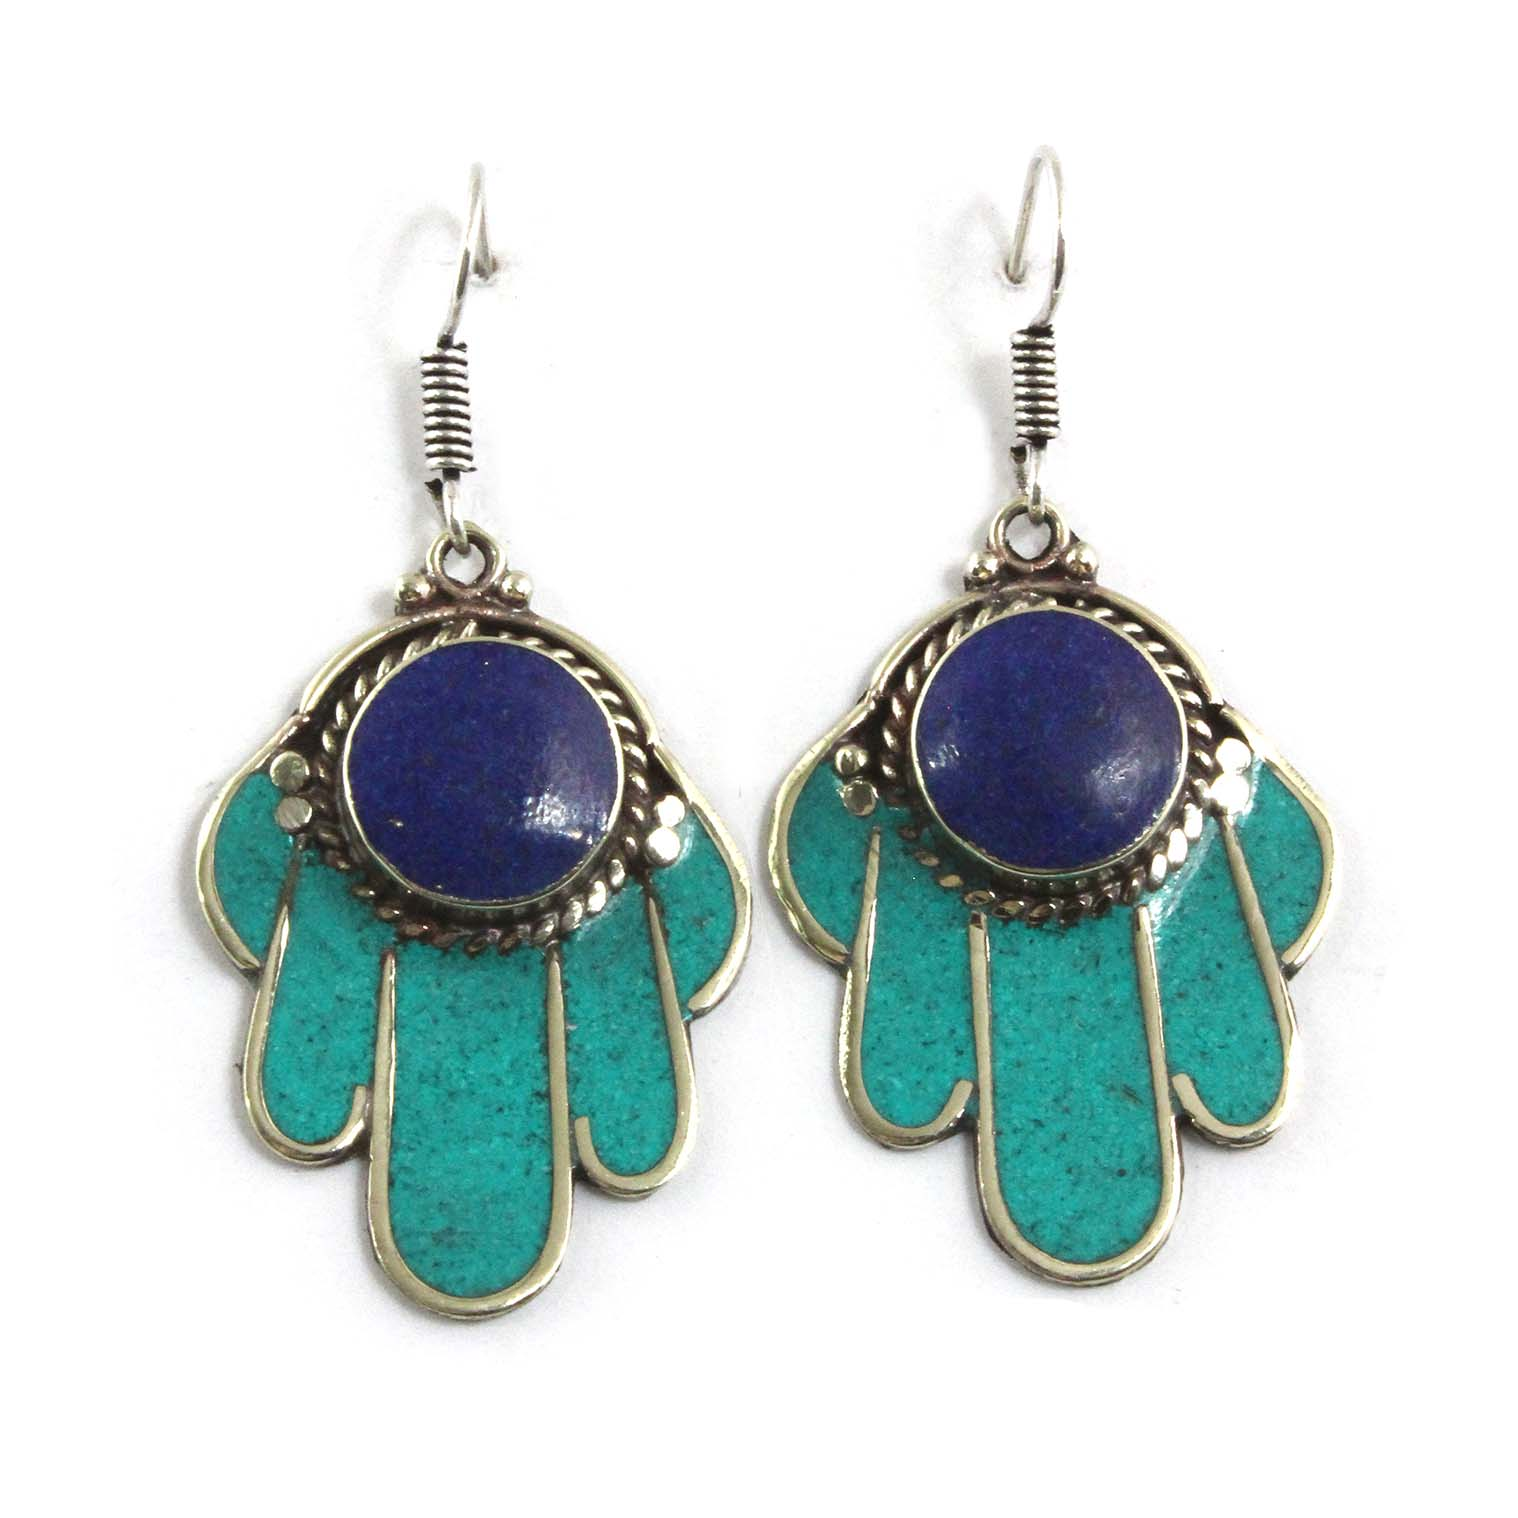 Cyan Fatima Earrings